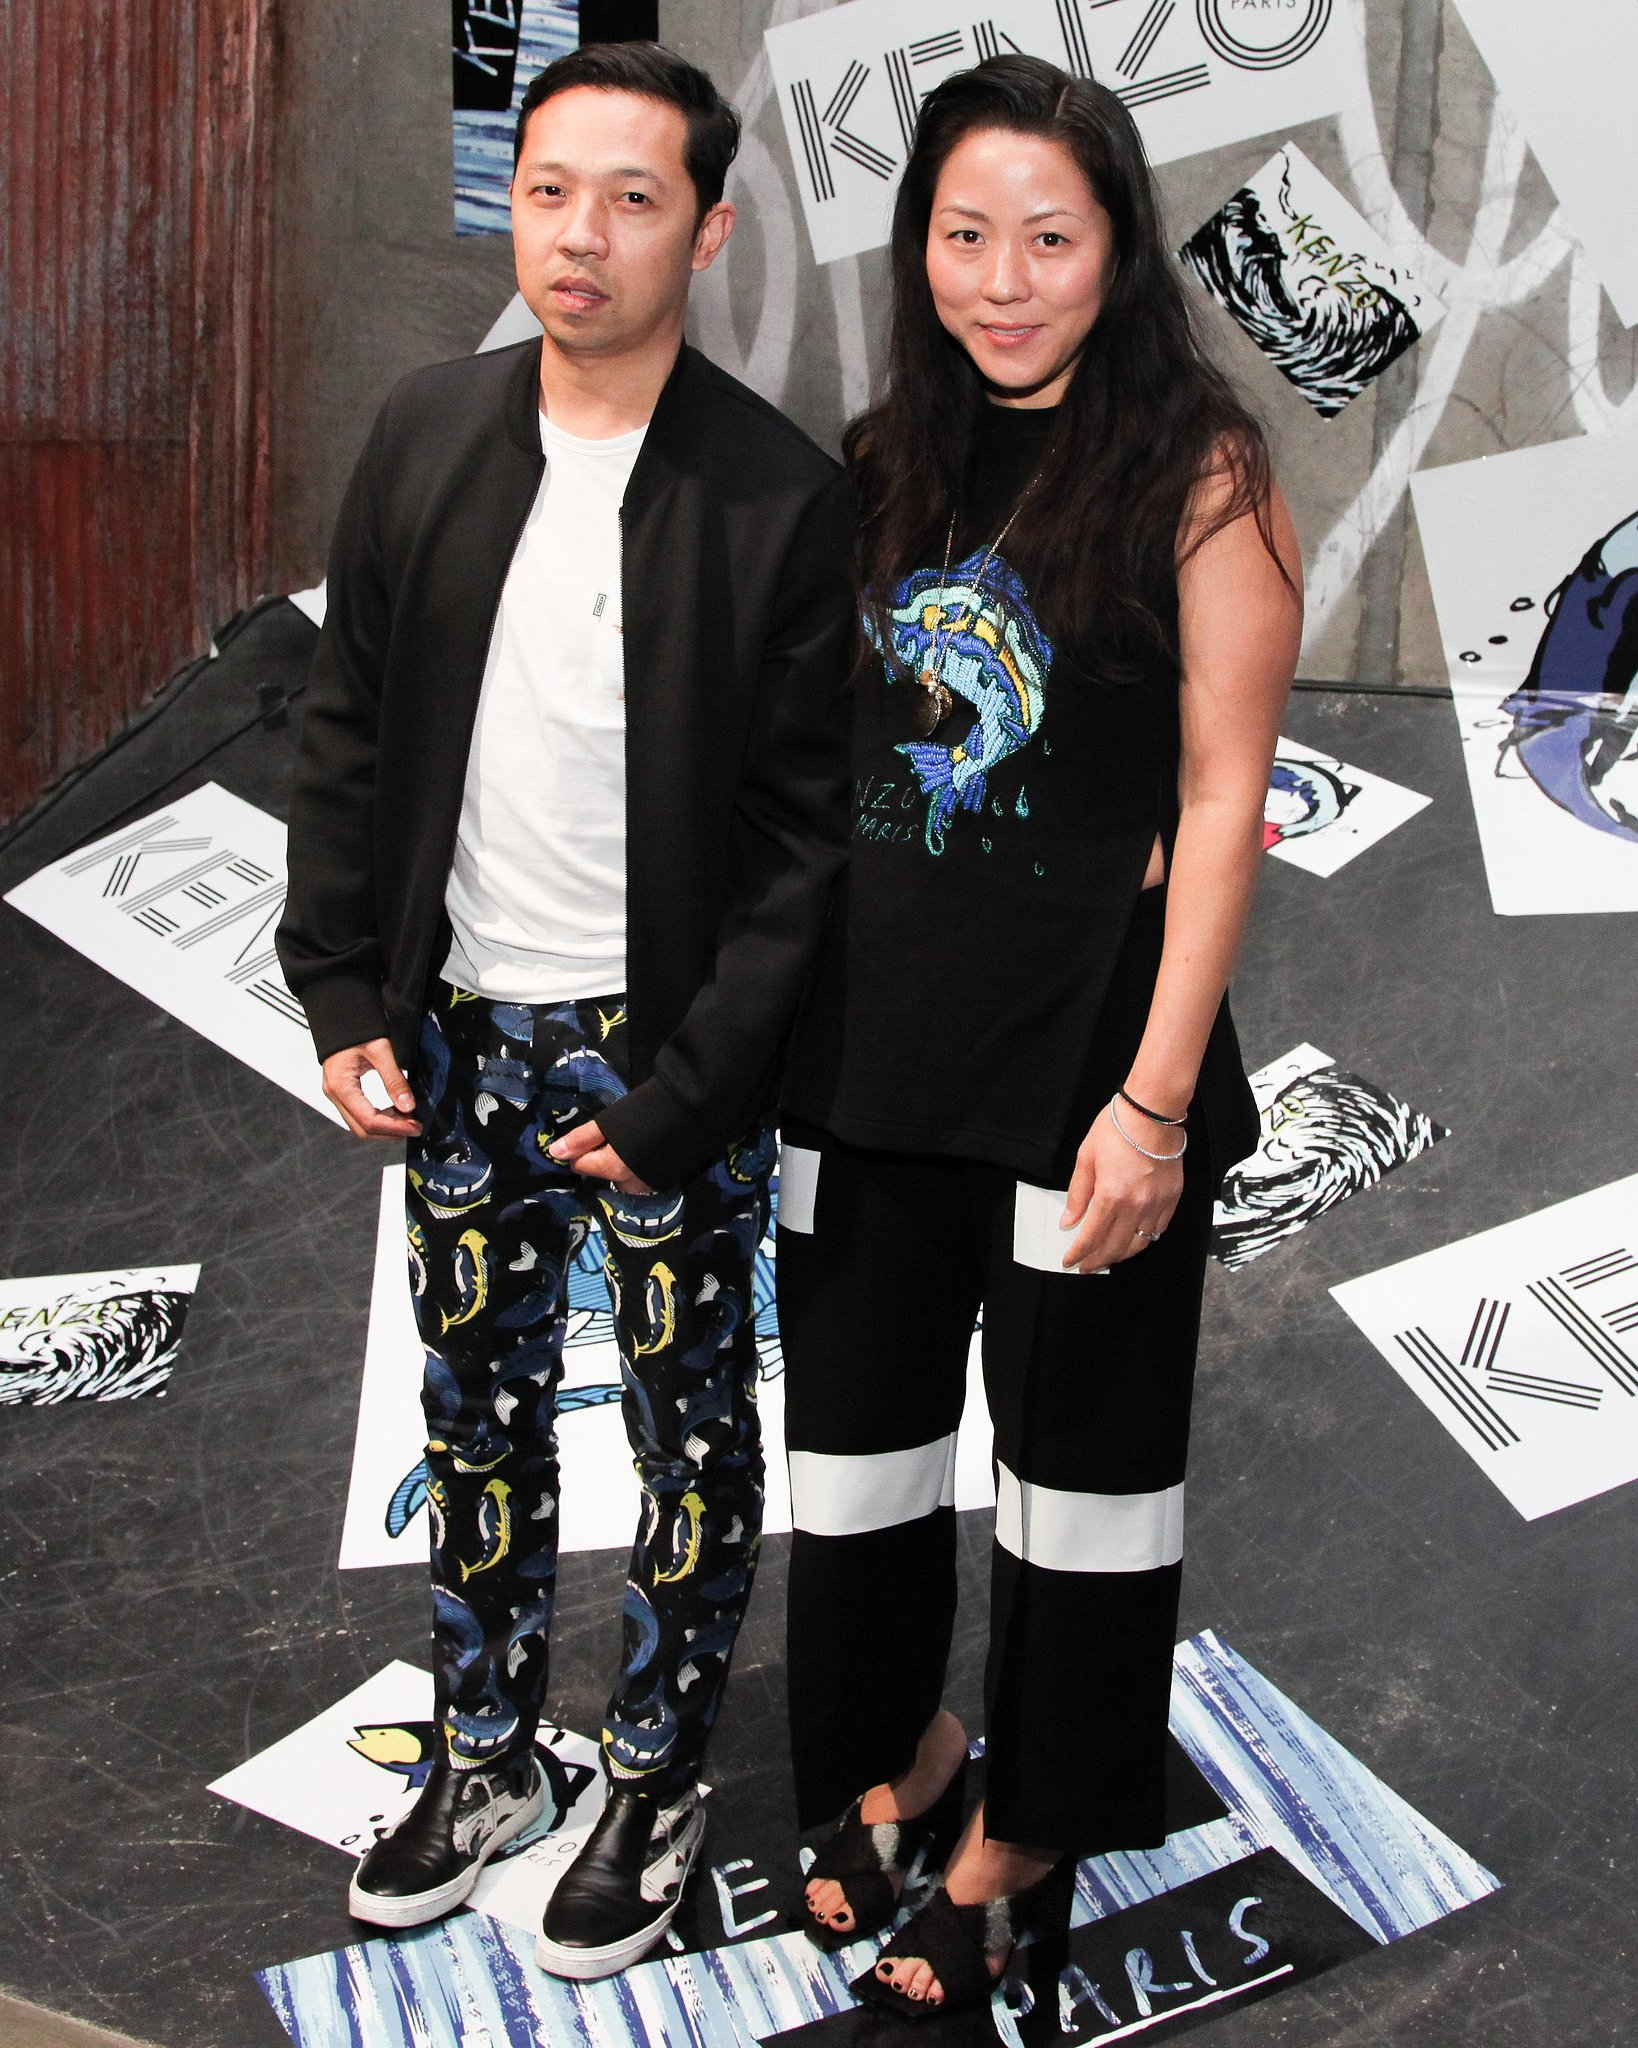 Kenzo's Umberto Leon and Carol Lim joined the revelers at the label's LA dinner.